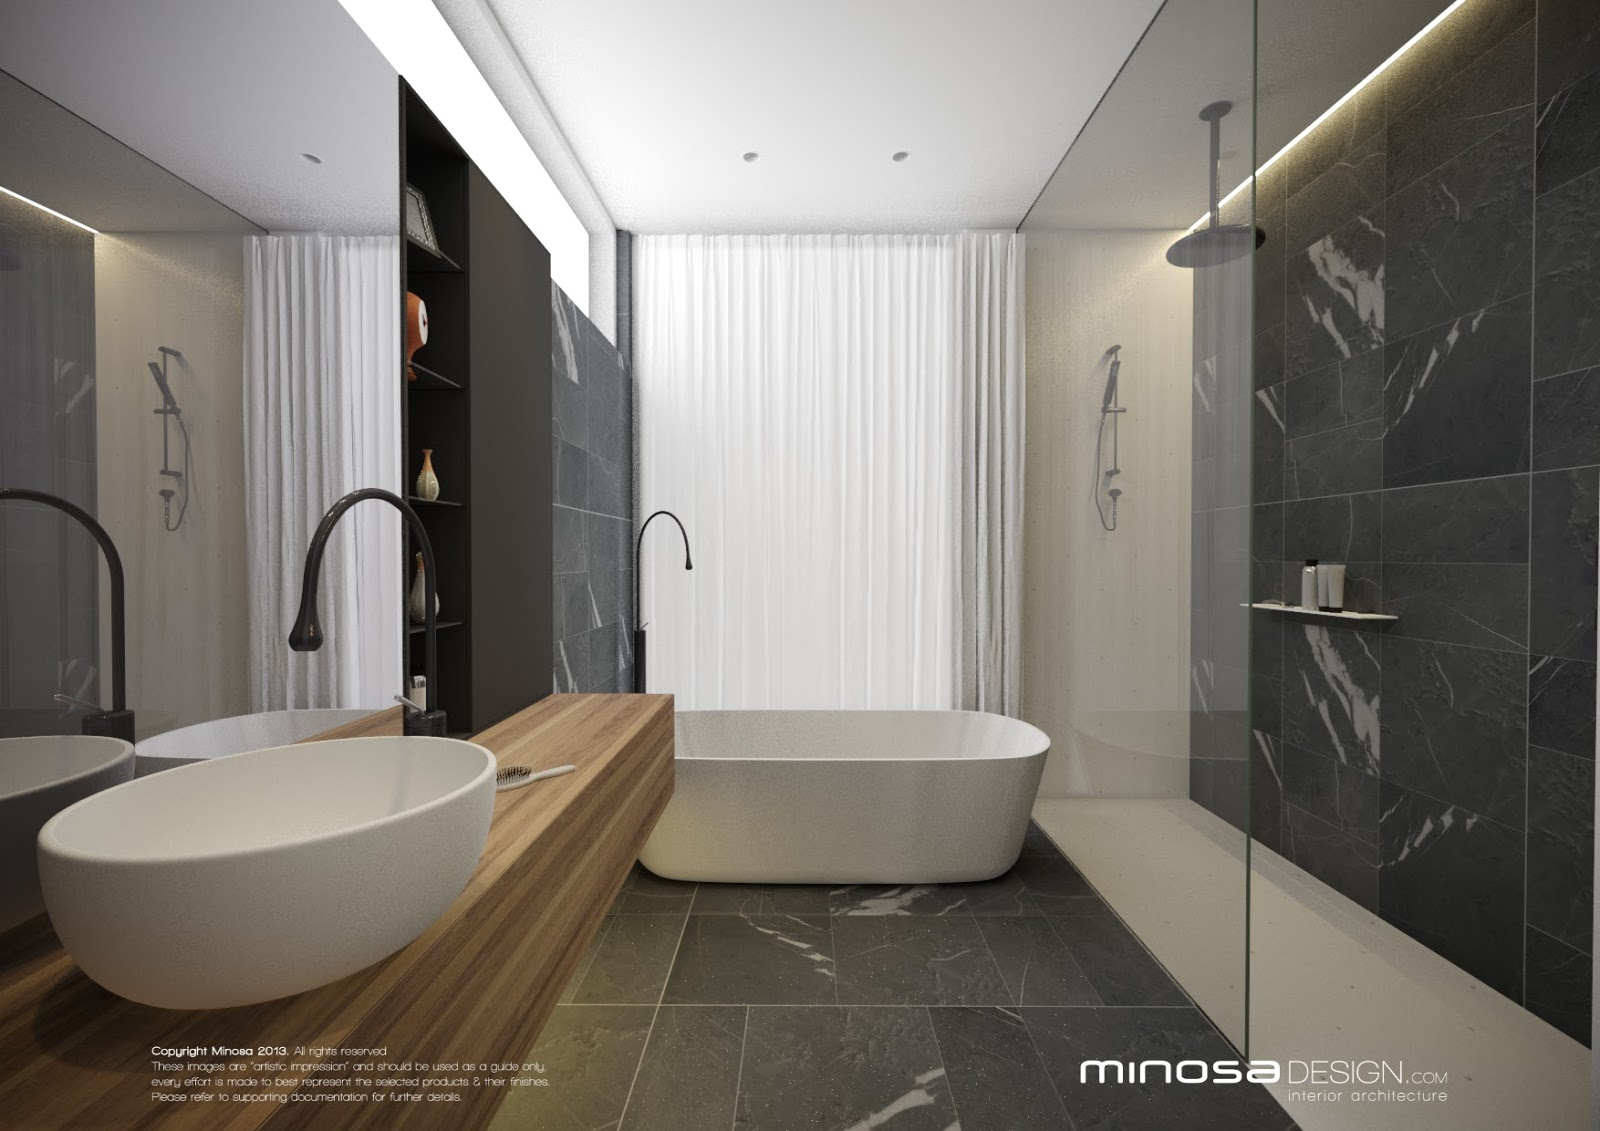 Minosa modern bathroom design to share for All bathroom designs